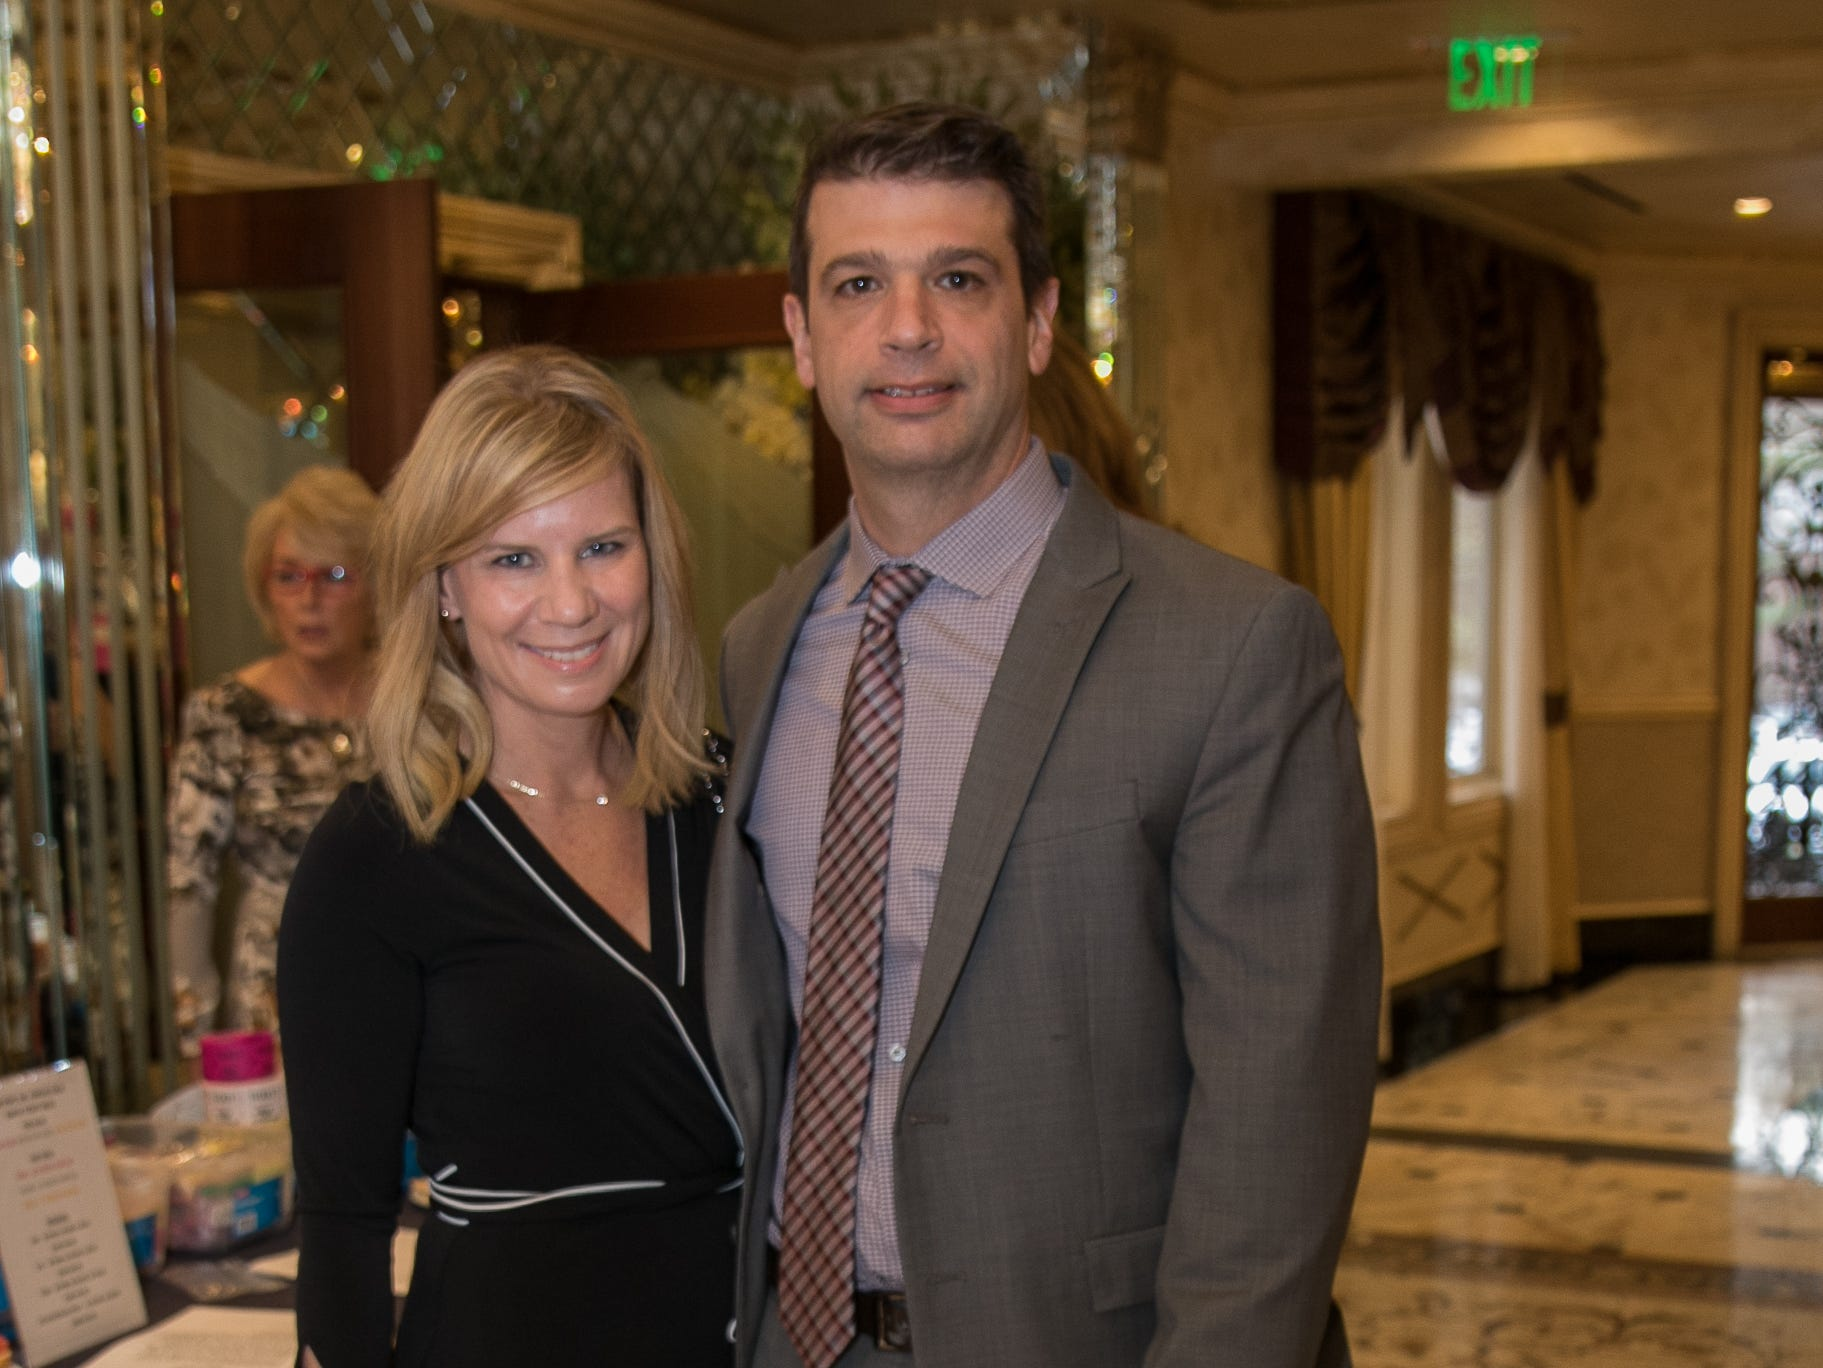 Margaret and Michael Laquidara. New Hope, a Pregnancy Resource Center, held their annual gala at Seasons in Washington Township. 04/05/2019